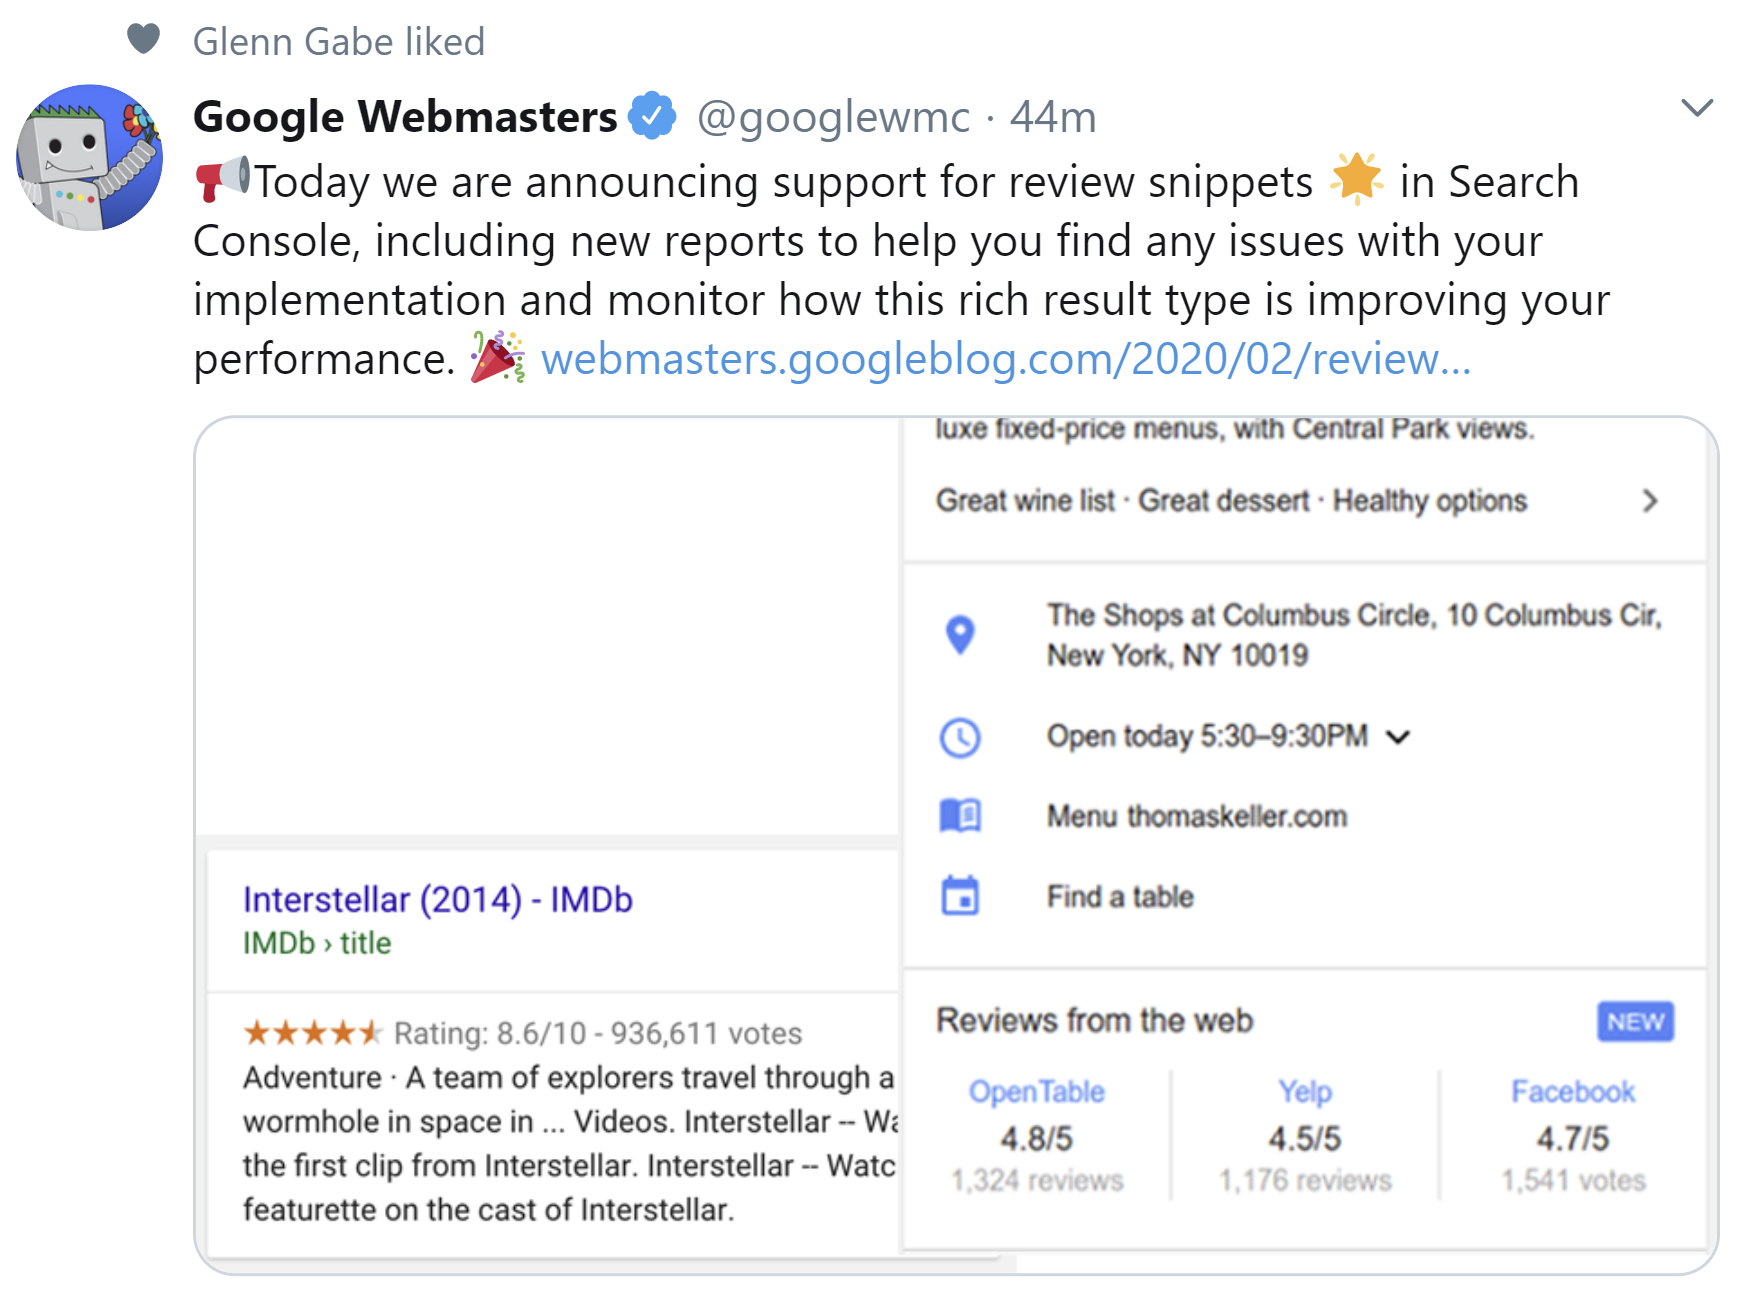 Google: Announcement of New Reports on Rich Snippets with Reviews